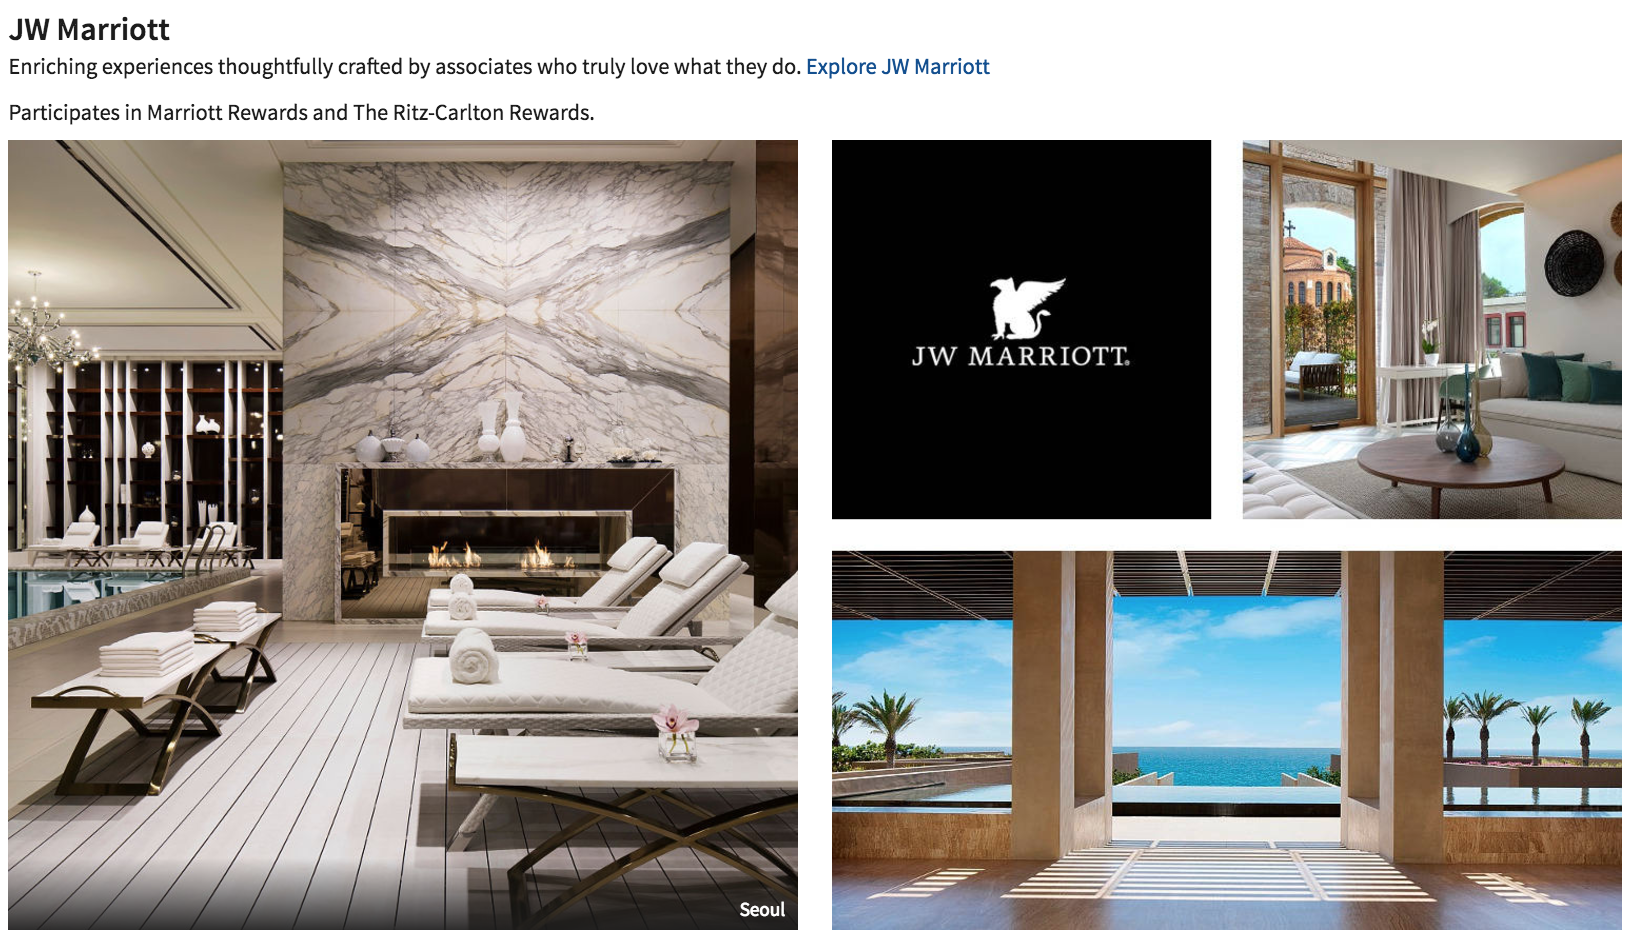 JW Marriott hotels are a part of Marriott's luxury collection of hotels.